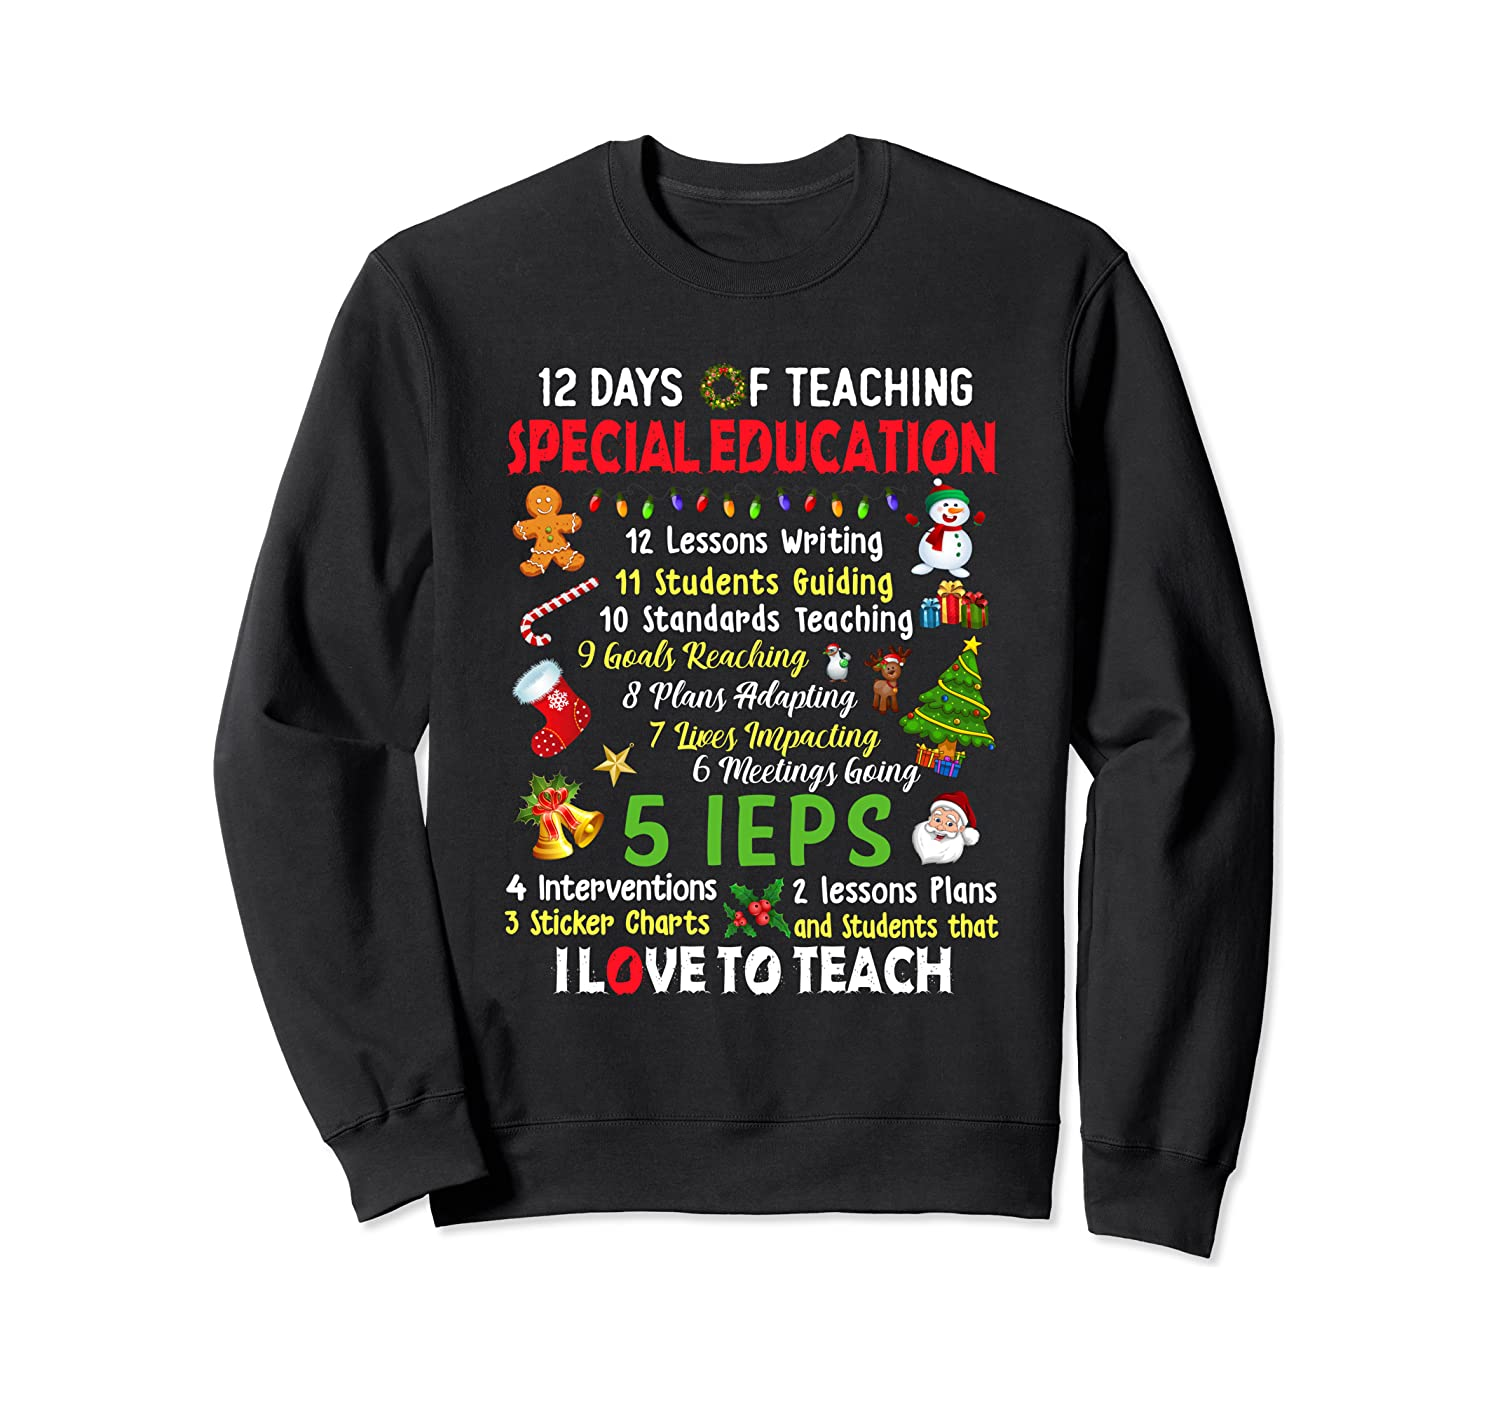 12 Days of Education SPED Sweater